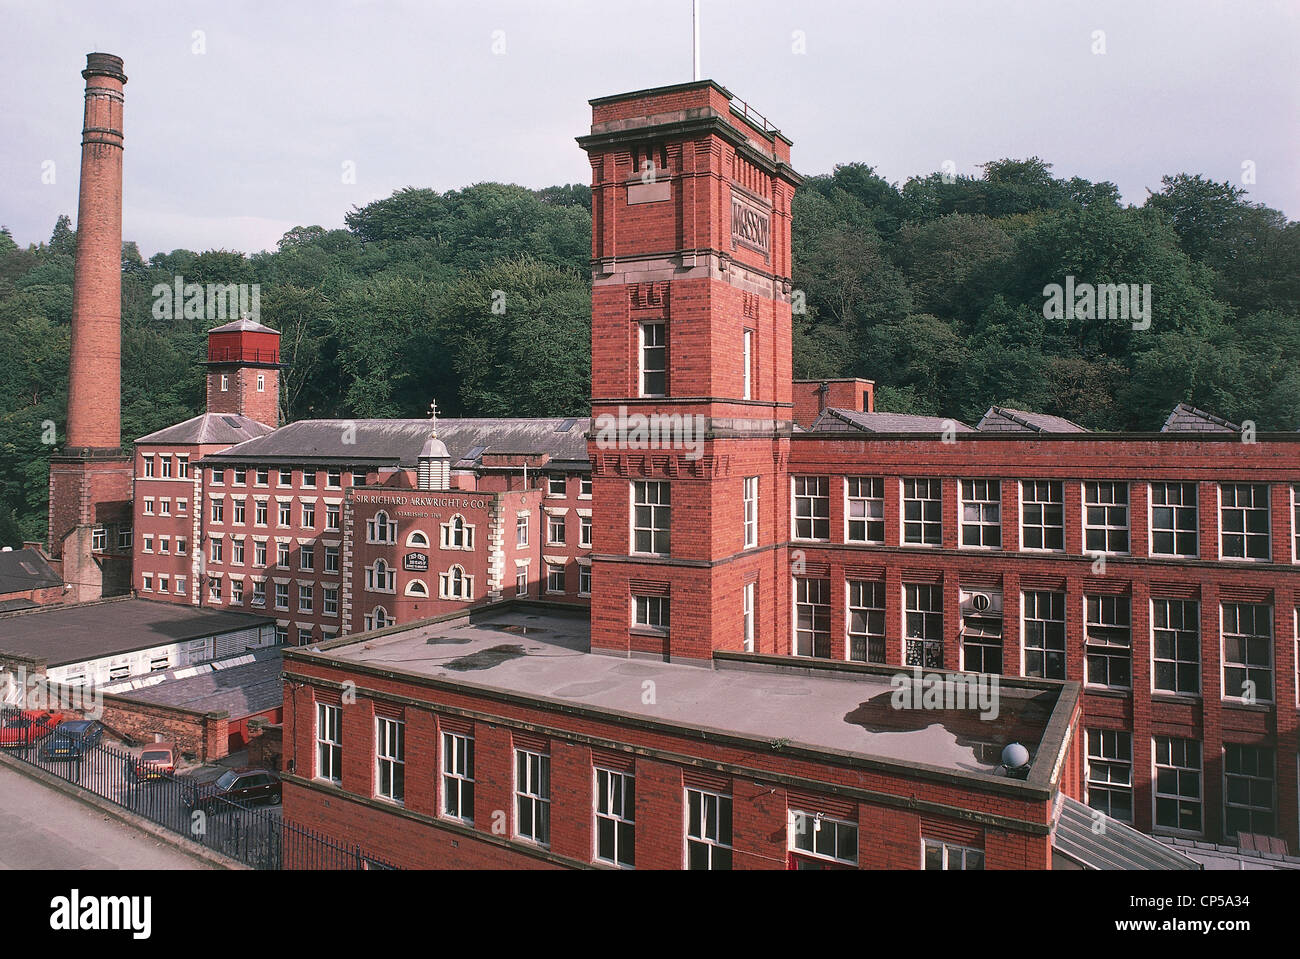 United Kingdom - England - Industrial Archaeology. Masson Mill in Matlock Bath. - Stock Image